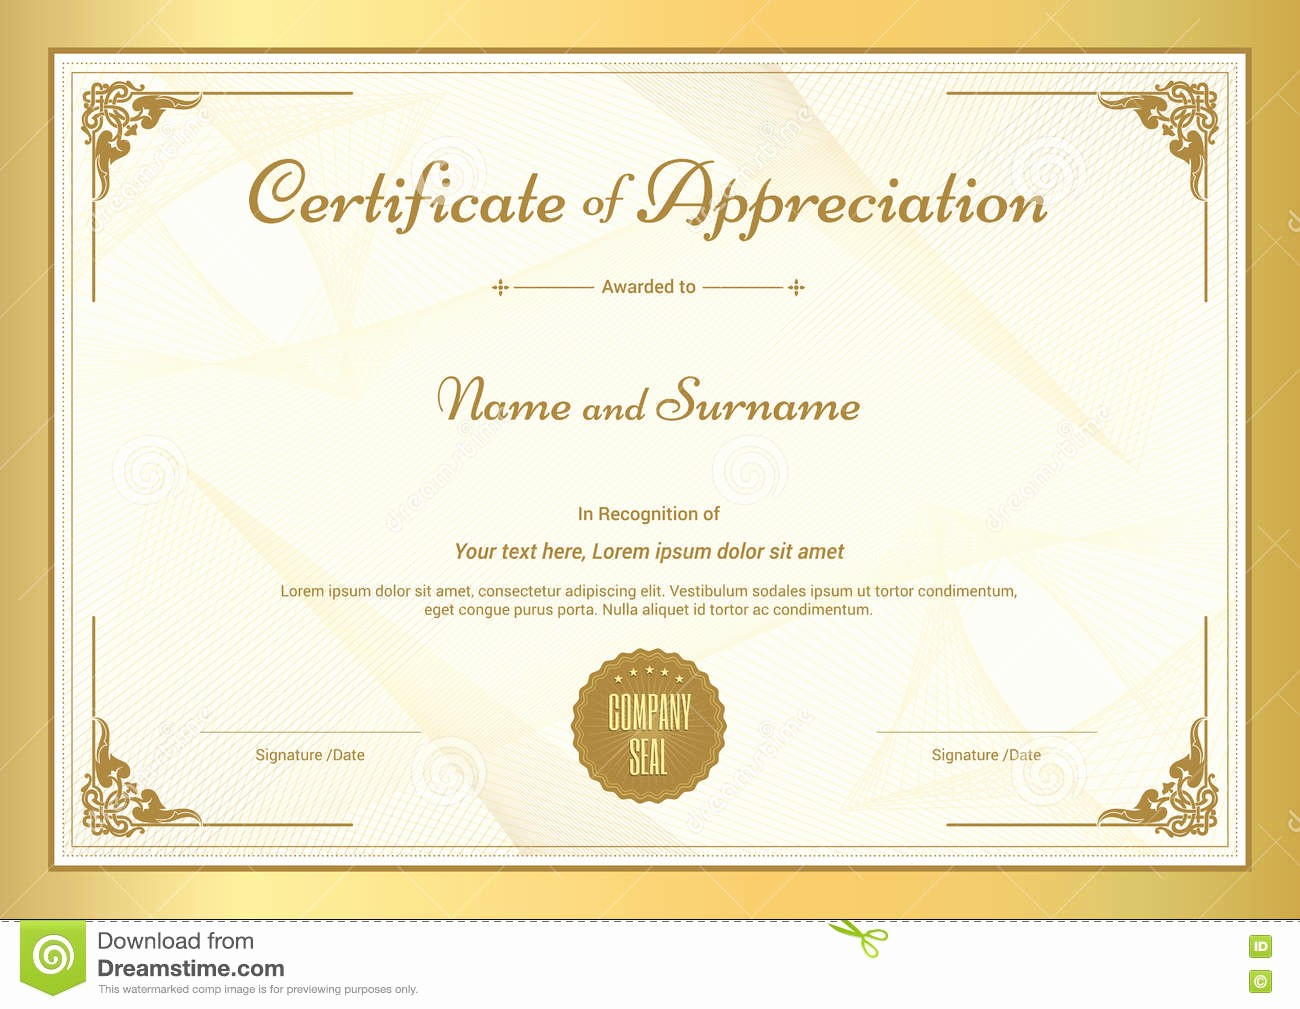 Template for Certificate Of Appreciation Best Of Certificate Appreciation Template with Gold Border